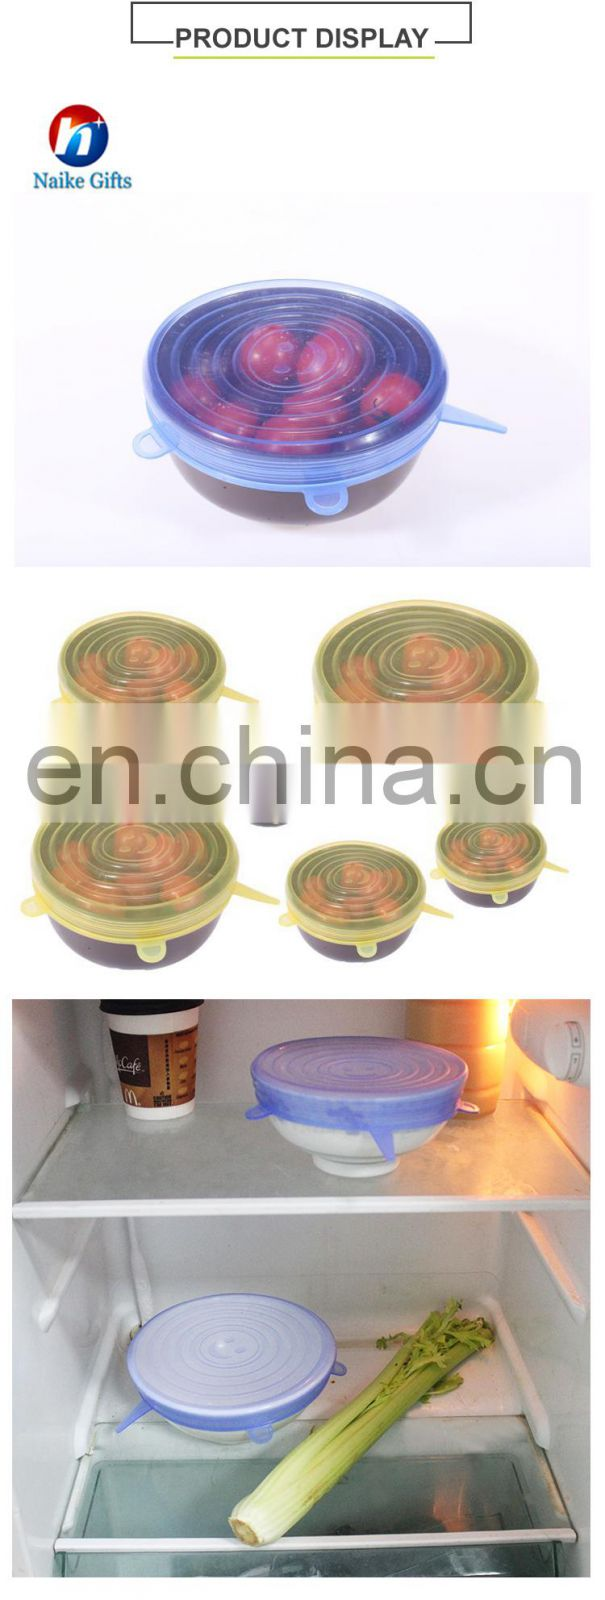 Silicone Lid Stretch Lids Keep Food Fresh 6-Pack of Various Sizes